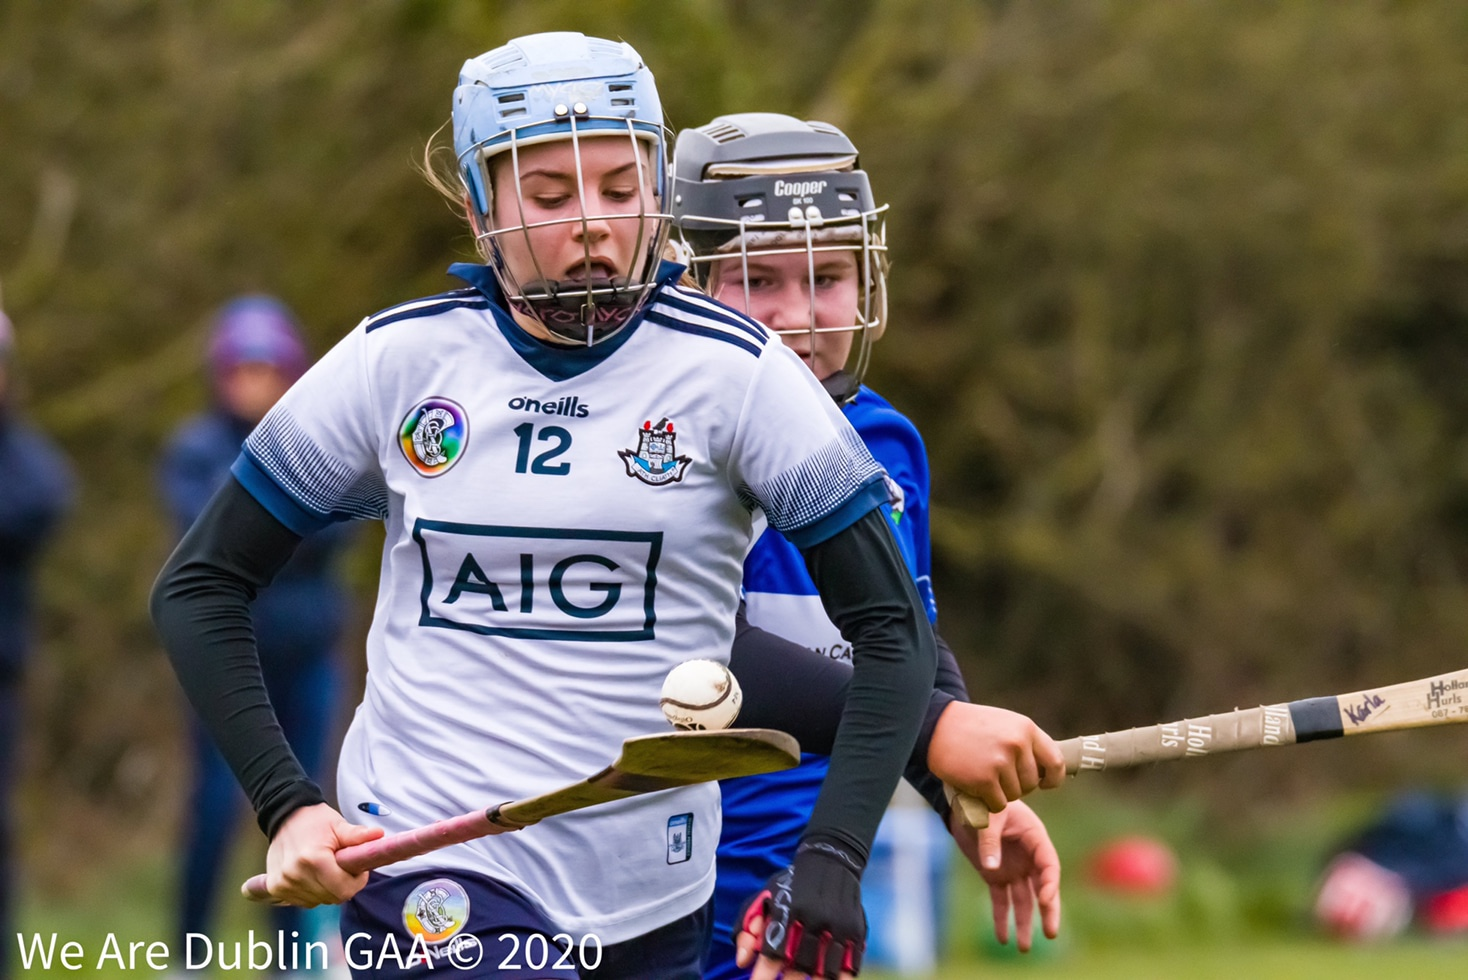 A Dublin minor Camogie player in action against Laois in 2020, the Camogie Association has announced the 2021 All Ireland Minor Championship will begin this Sunday the 25th of July.